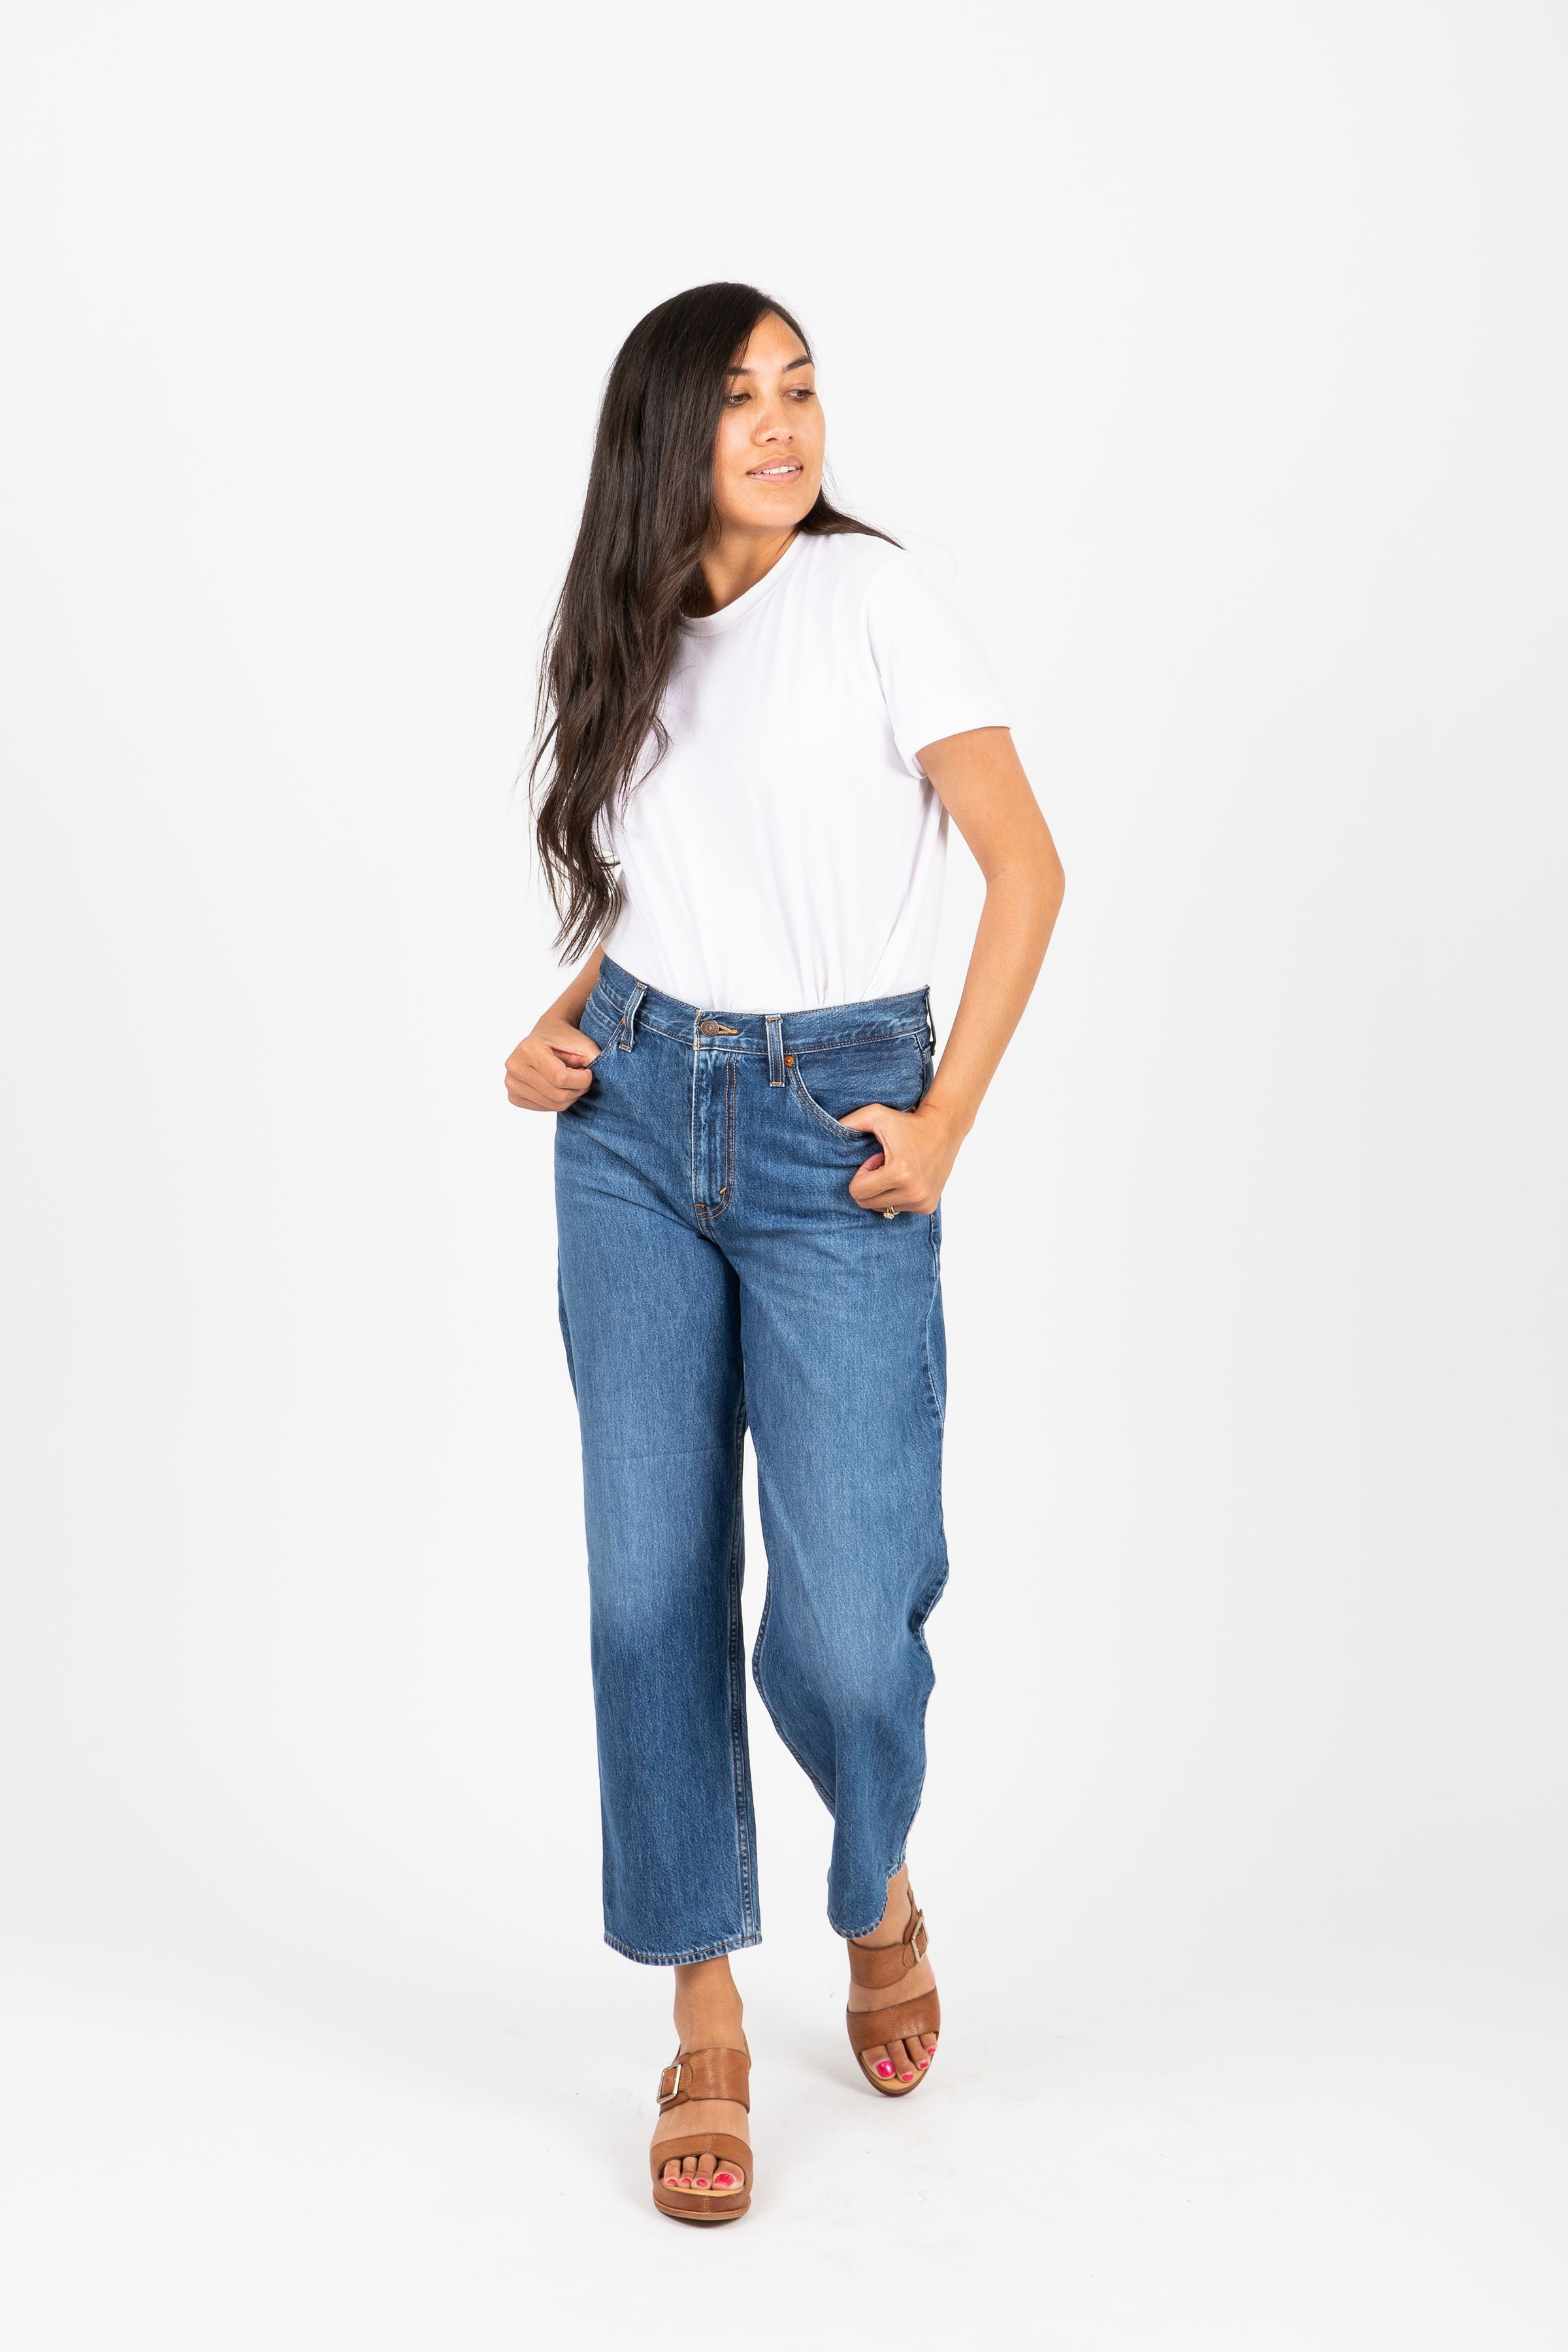 Levi's: Dad Jeans in Joe Cool